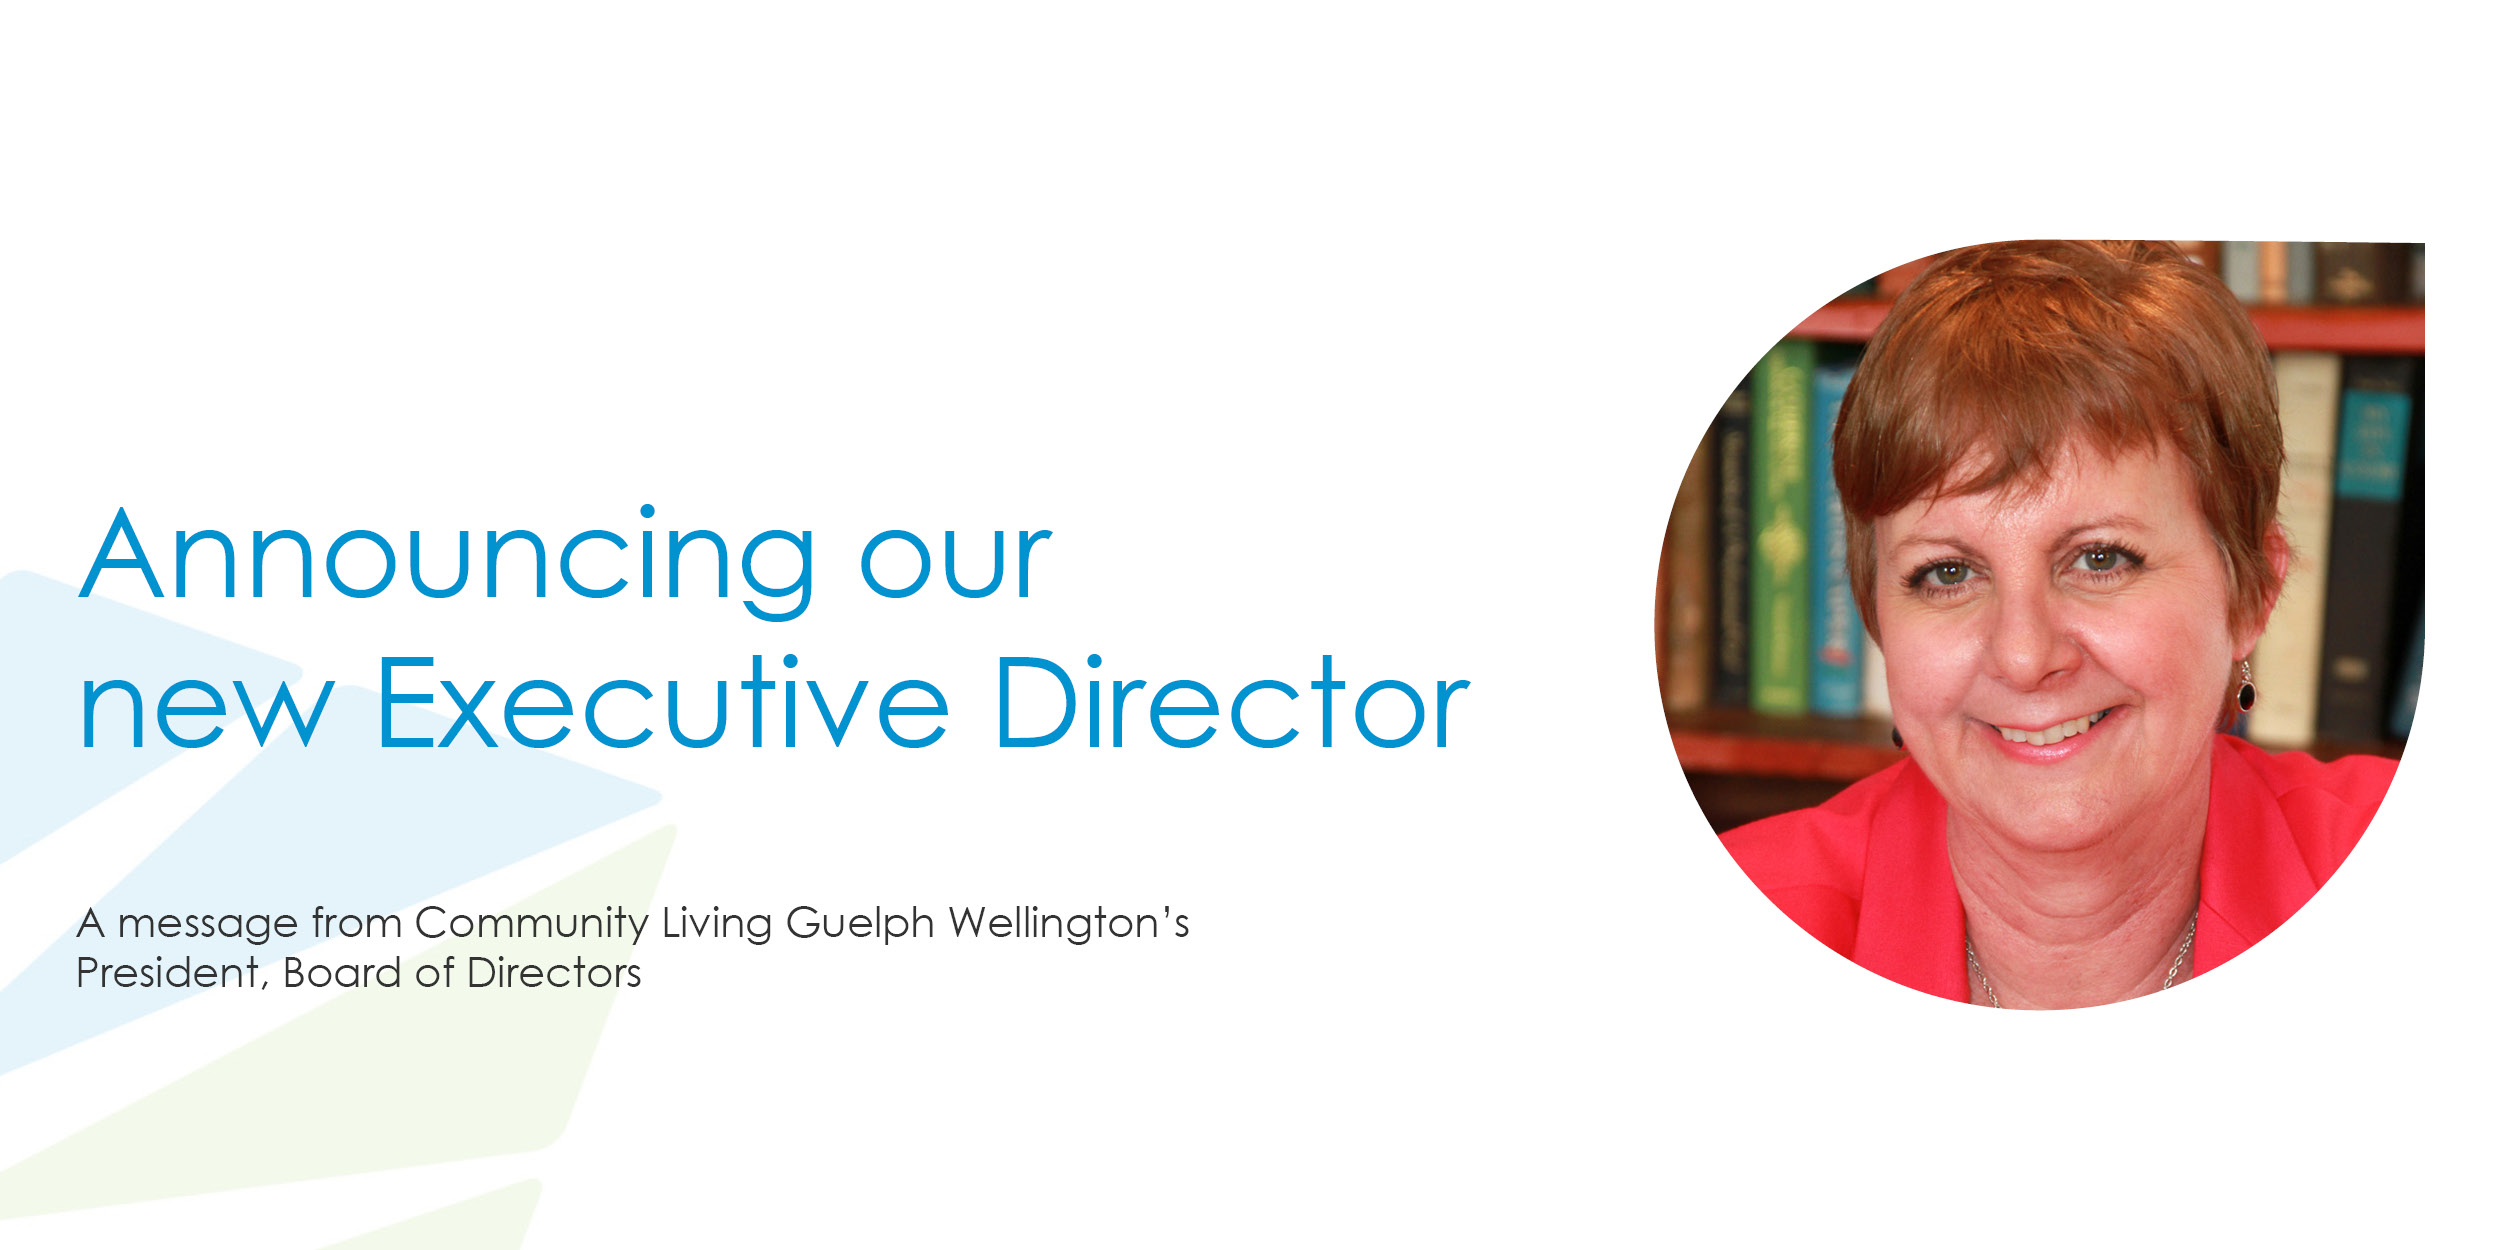 new executive director announcement, cindy kinnon, community living guelph wellington